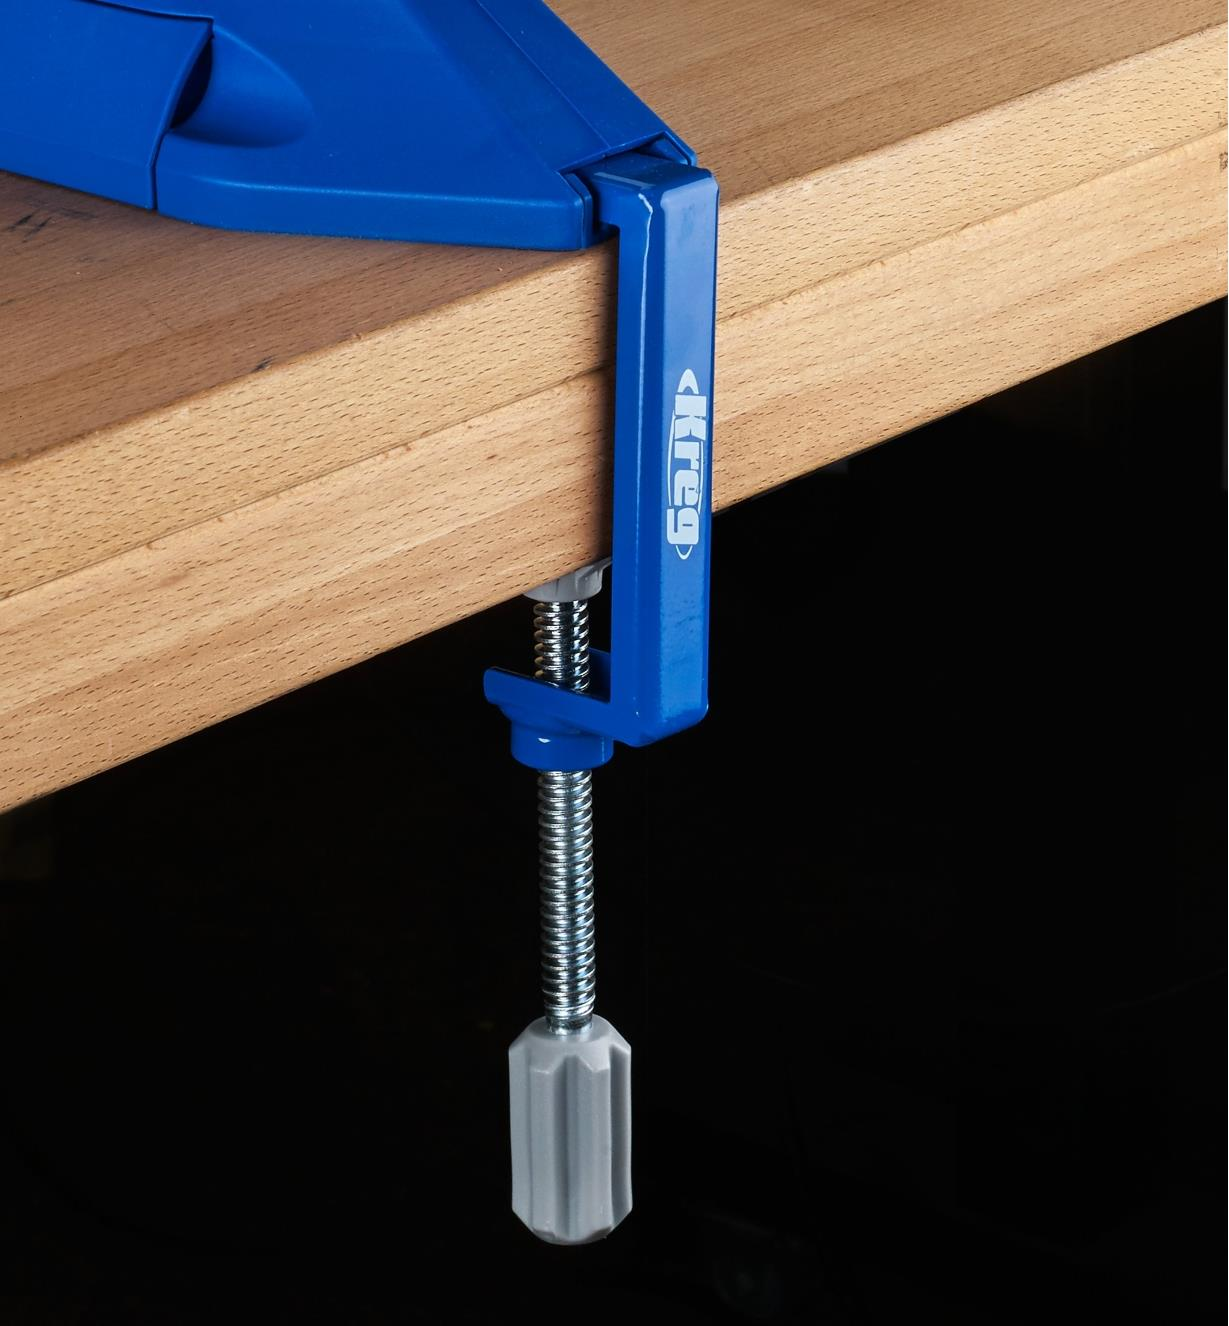 A close view of the included table clamp used to secure a Kreg 720 Pro jig to a workbench